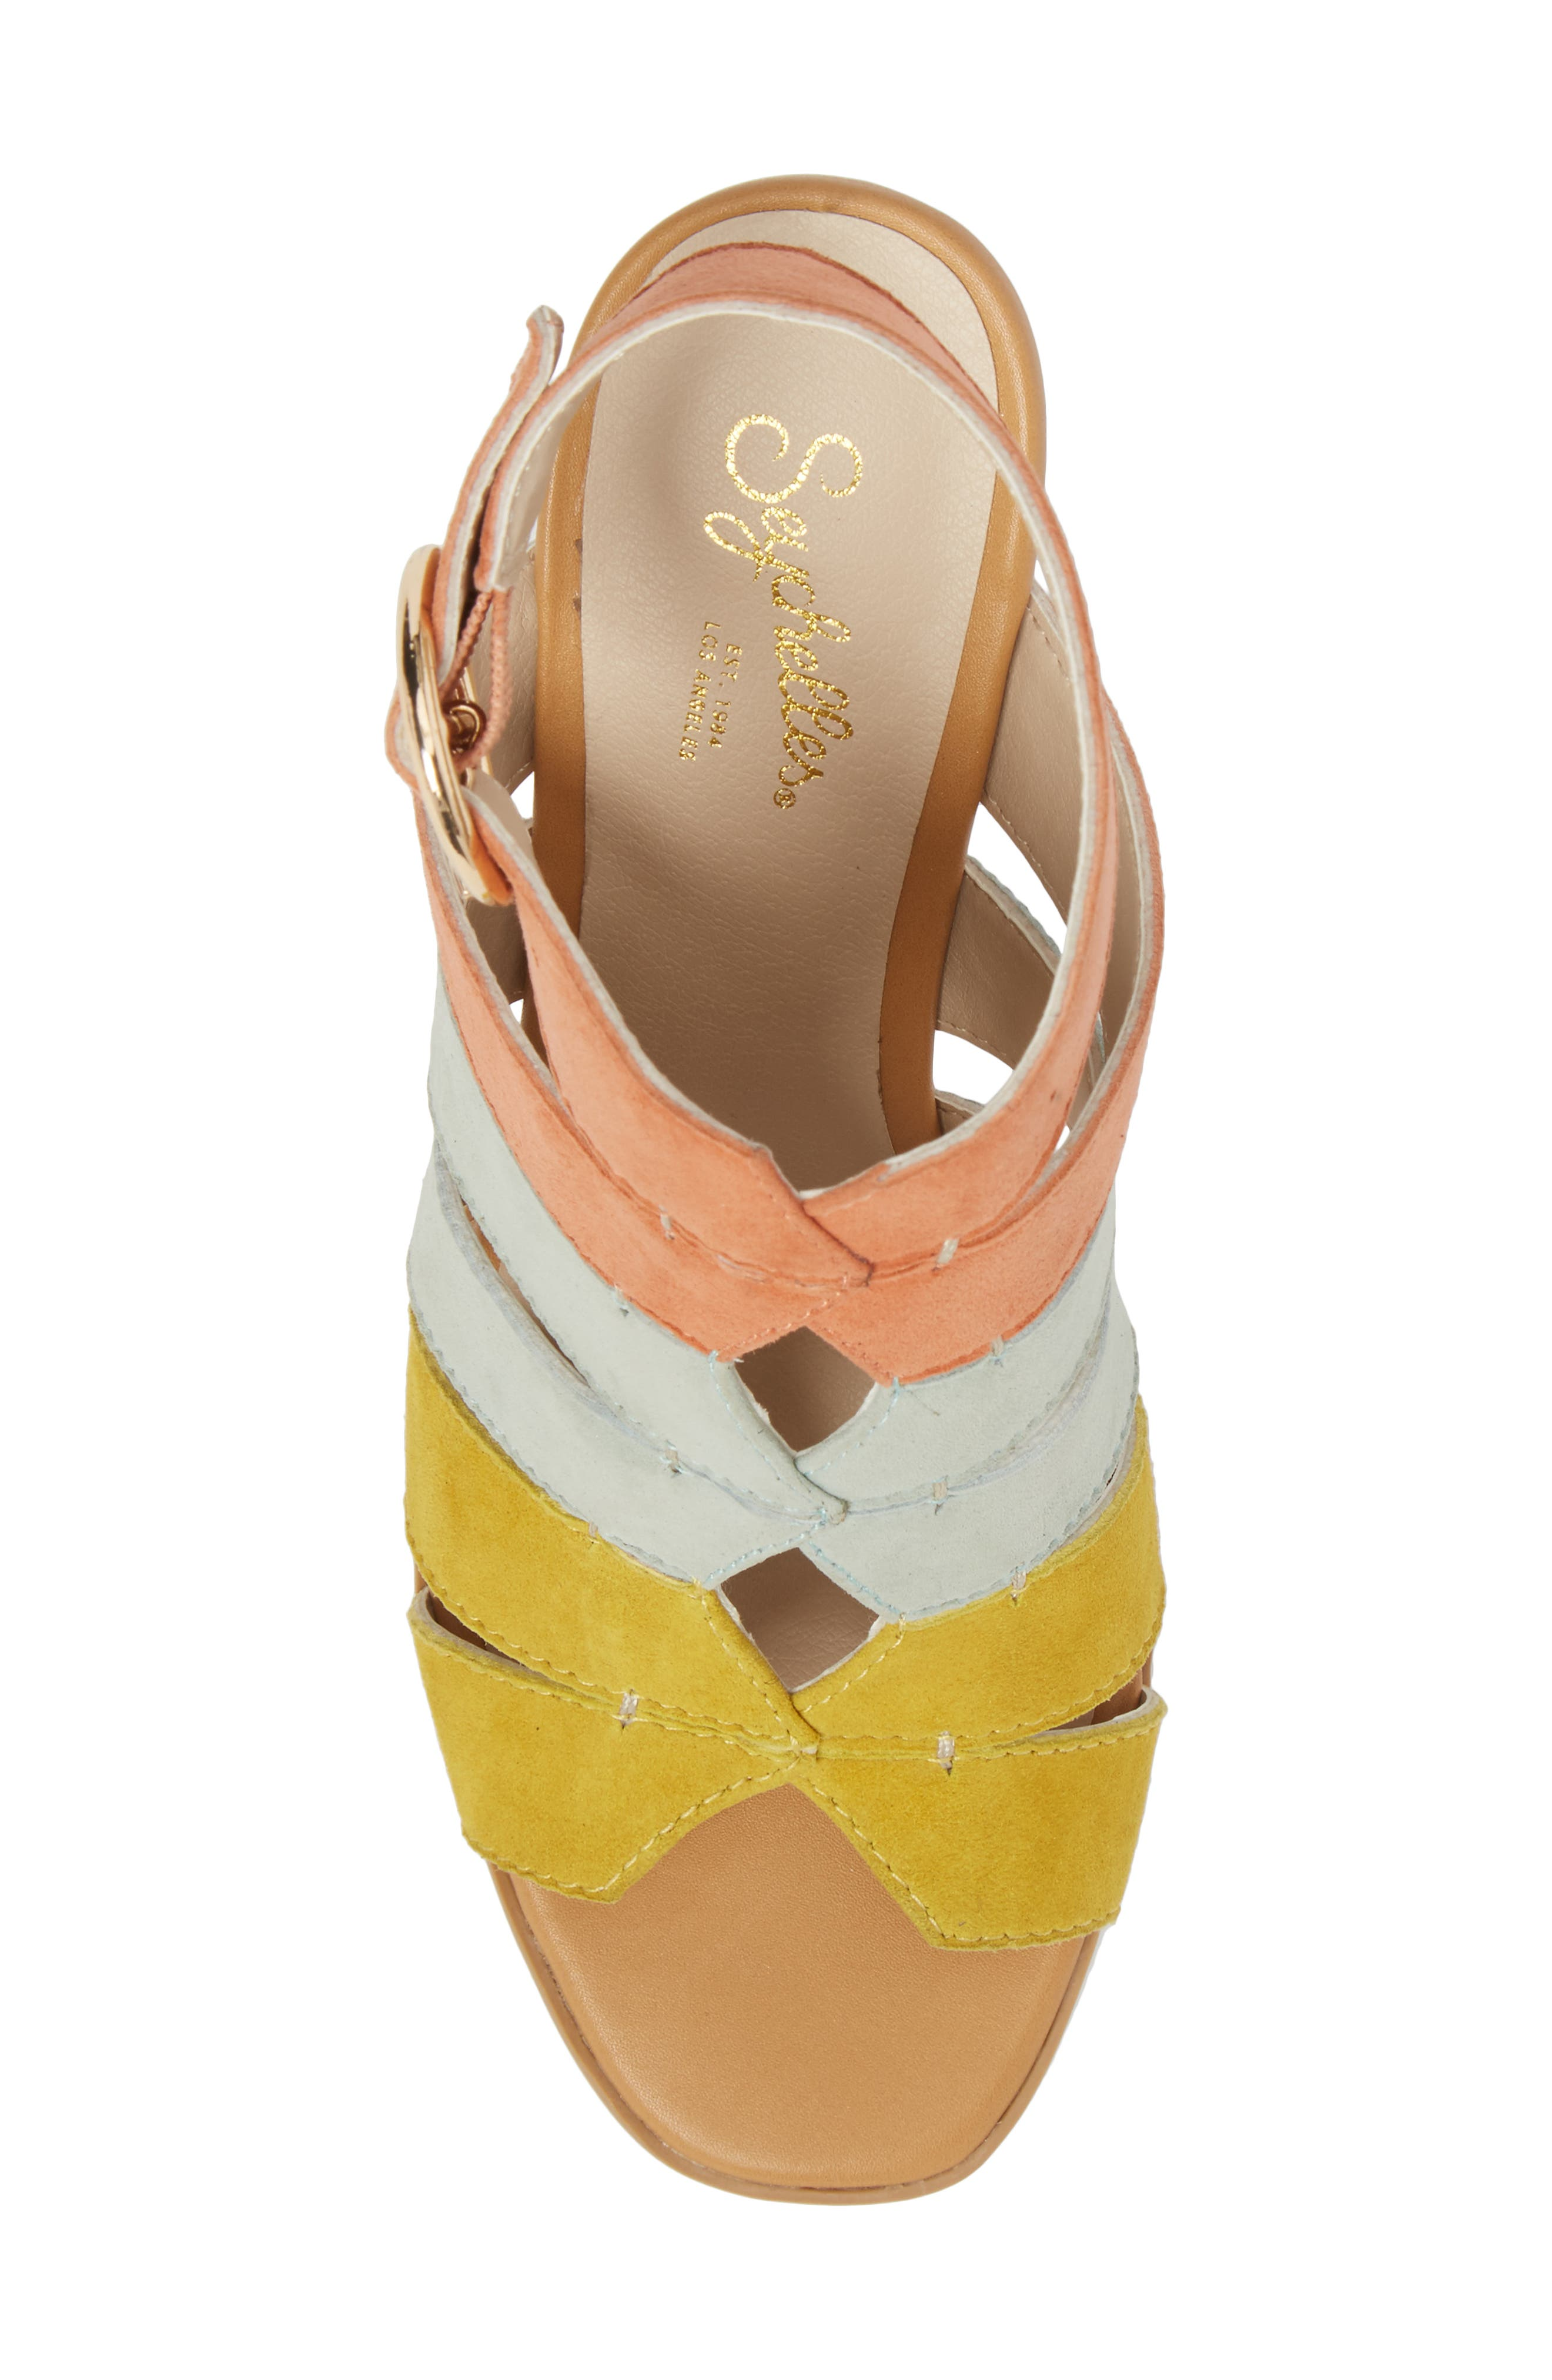 Completely Engaged Sandal,                             Alternate thumbnail 5, color,                             Pastel Multi Suede